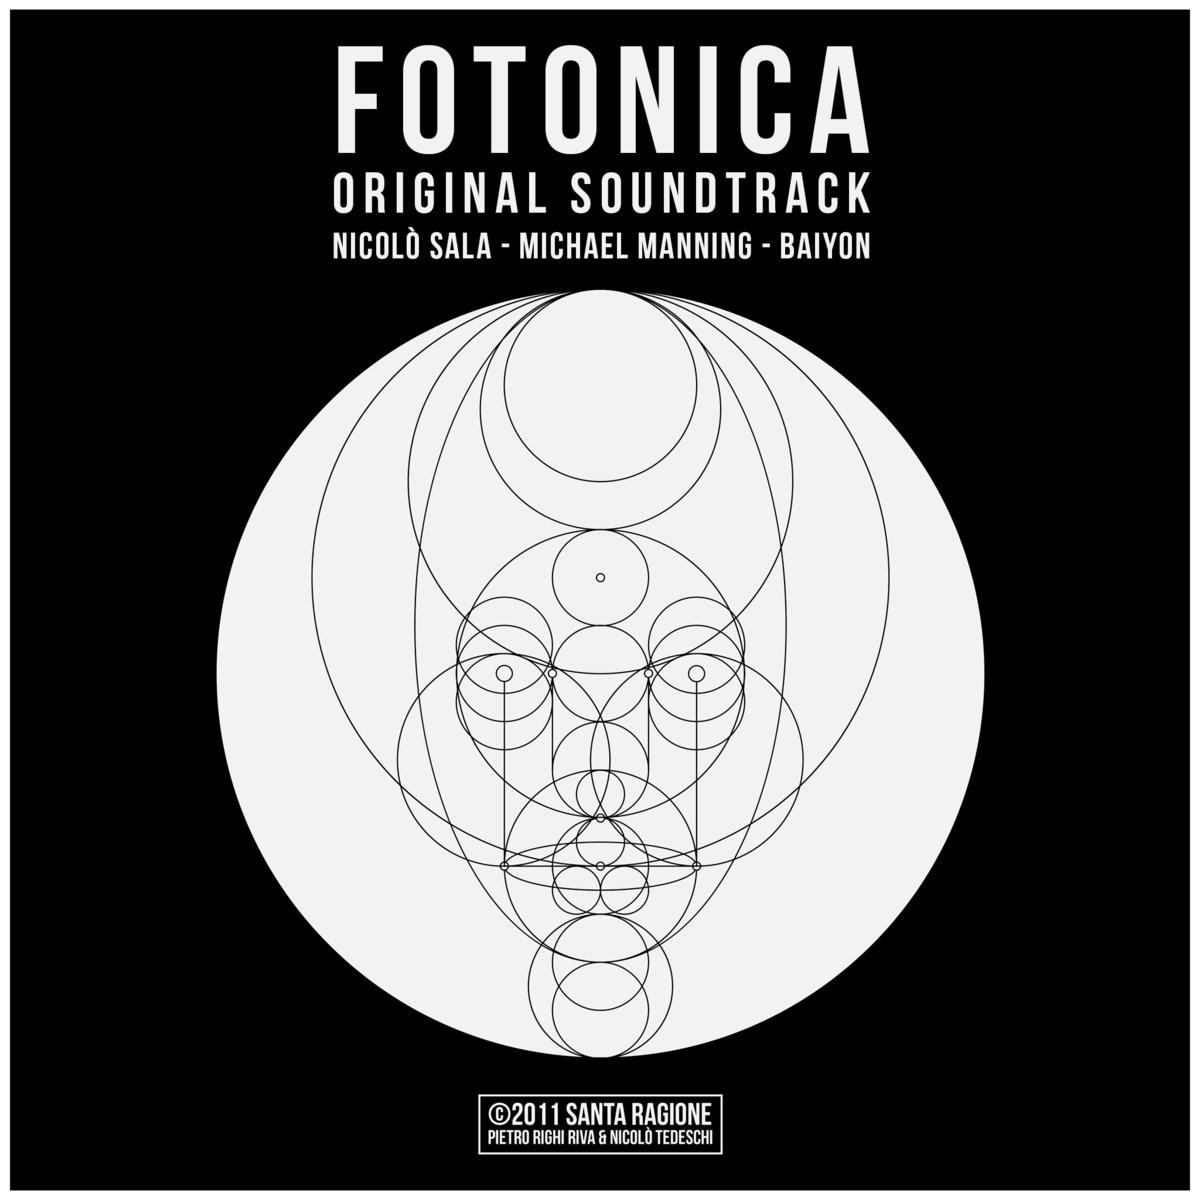 FOTONICA OST